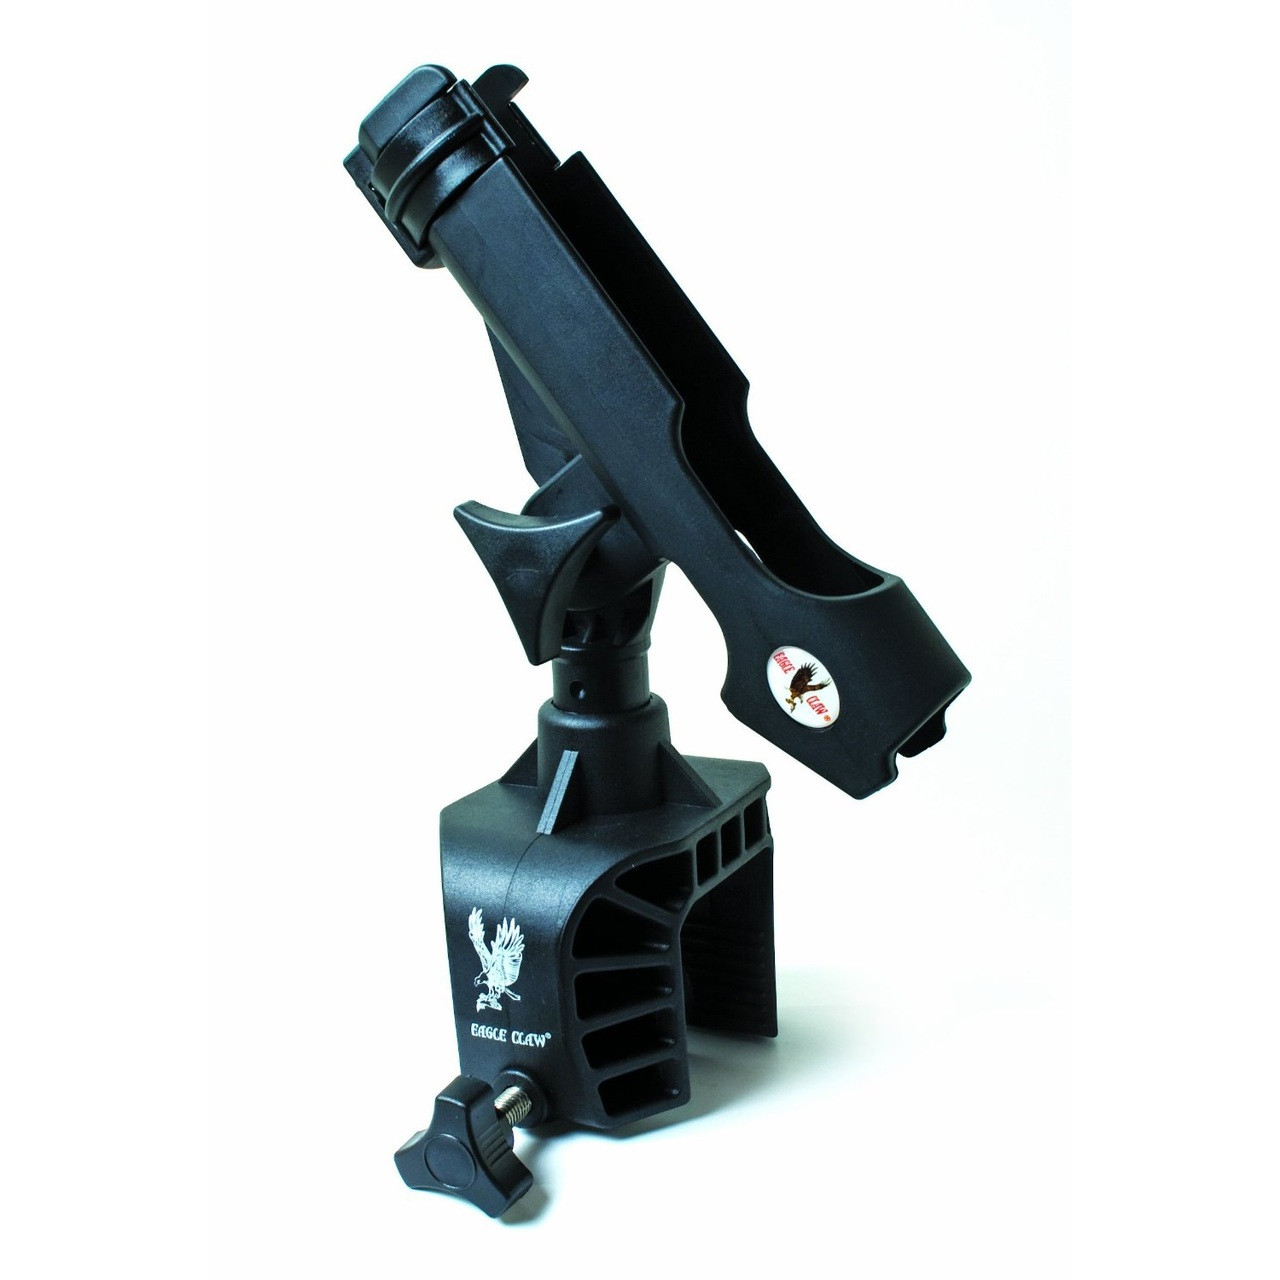 Eagle claw deluxe clamp on fishing rod holder for Fishing rod holders